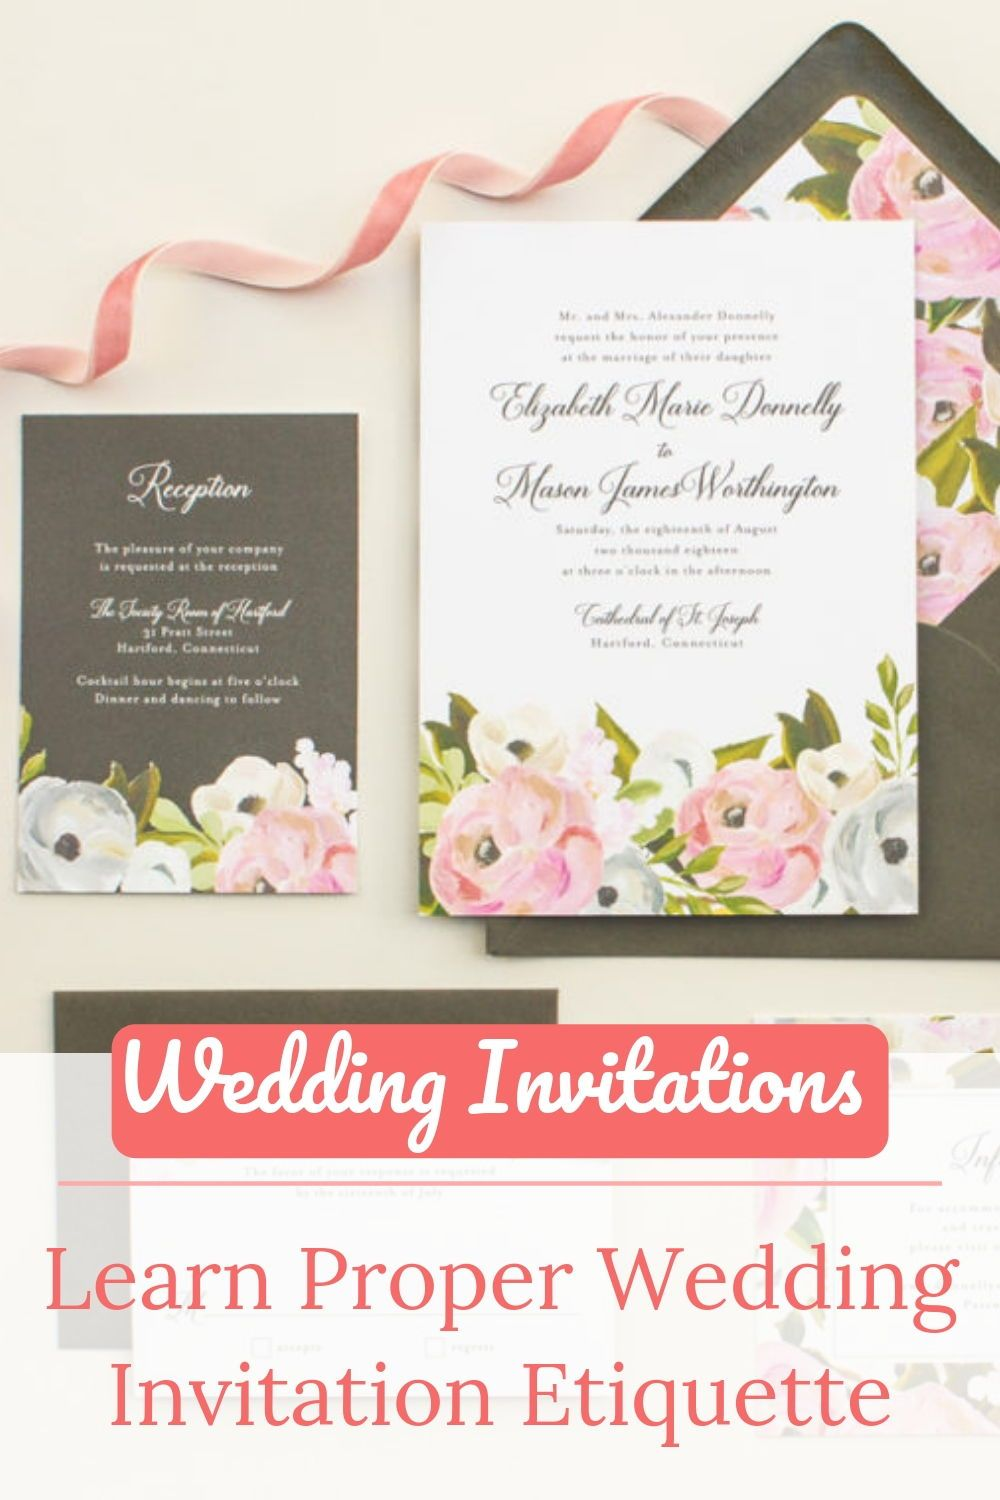 Learn Proper Wedding Invitation Etiquette Wedding Invitation Etiquette Wedding Invitations Wedding Planning Boards